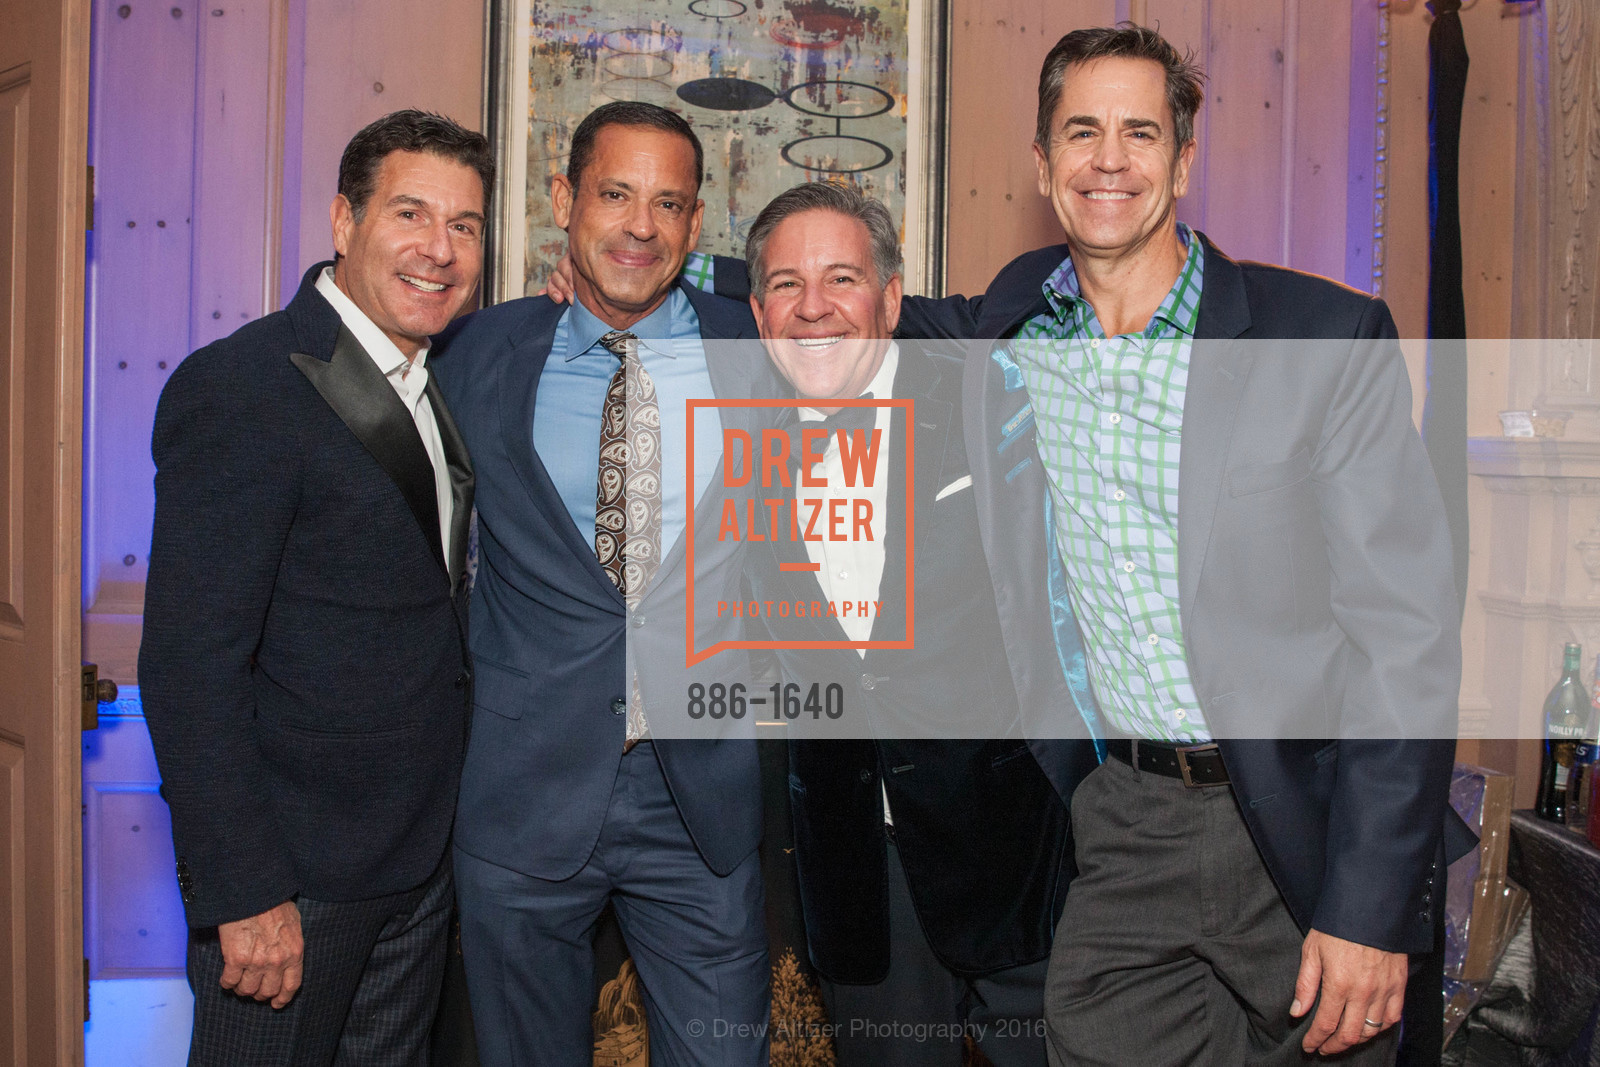 Glenn Risso, Gregg Lynn, Gregg Lynn and Glenn Risso's Engagement Party, Farimont Hotel, Penthouse. San Francisco, California, December 7th, 2016